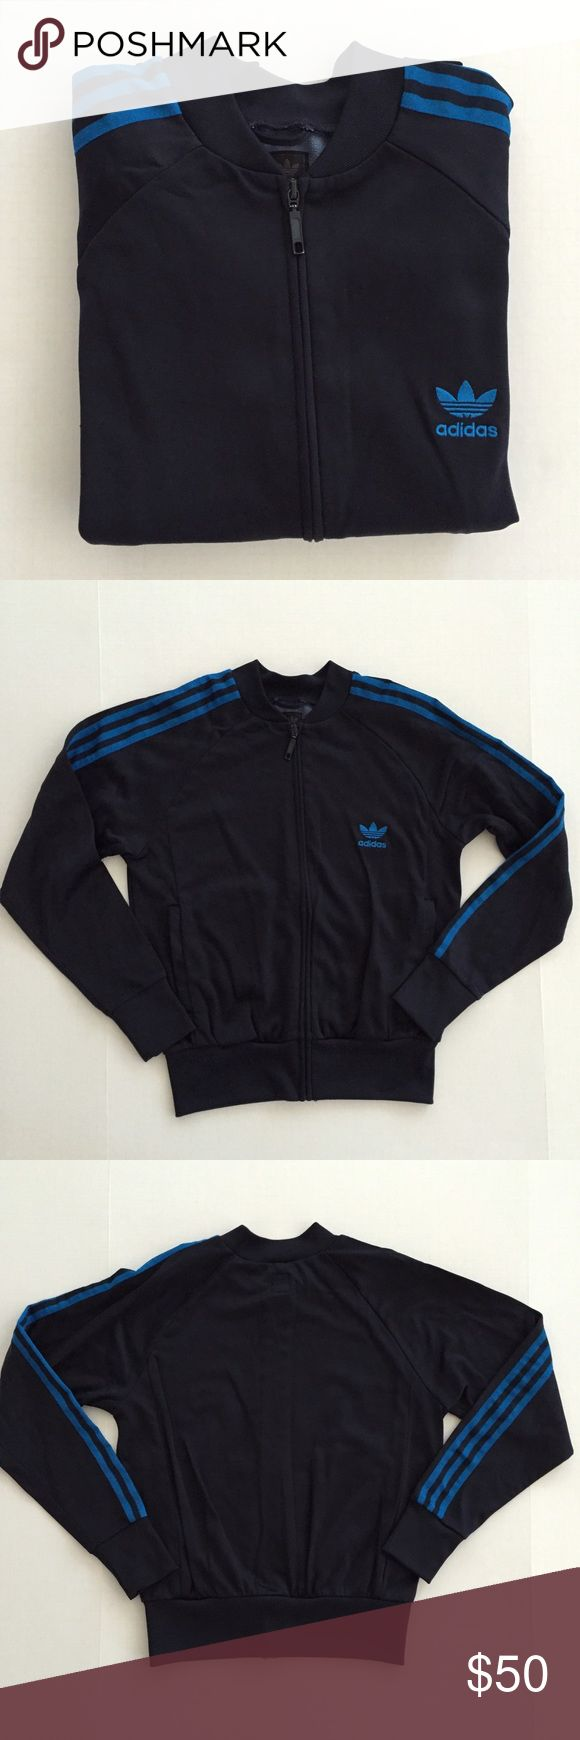 [Adidas•Originals] women's track zip-up jacket S-M [Adidas•Originals] women's track zip-up jacket S-M •🆕listing •great pre-owned condition •navy blue with brighter blue stripe detail and embroidered logo •size runs like S-M, tag size L •full zip front, 2 pockets •material 78% nylon 22% polyester, exterior swishy, interior soft fleece-like feel •zipper paint has some chipping when looking very closely, otherwise great condition •offers welcomed using the offer feature or bundle for the best…